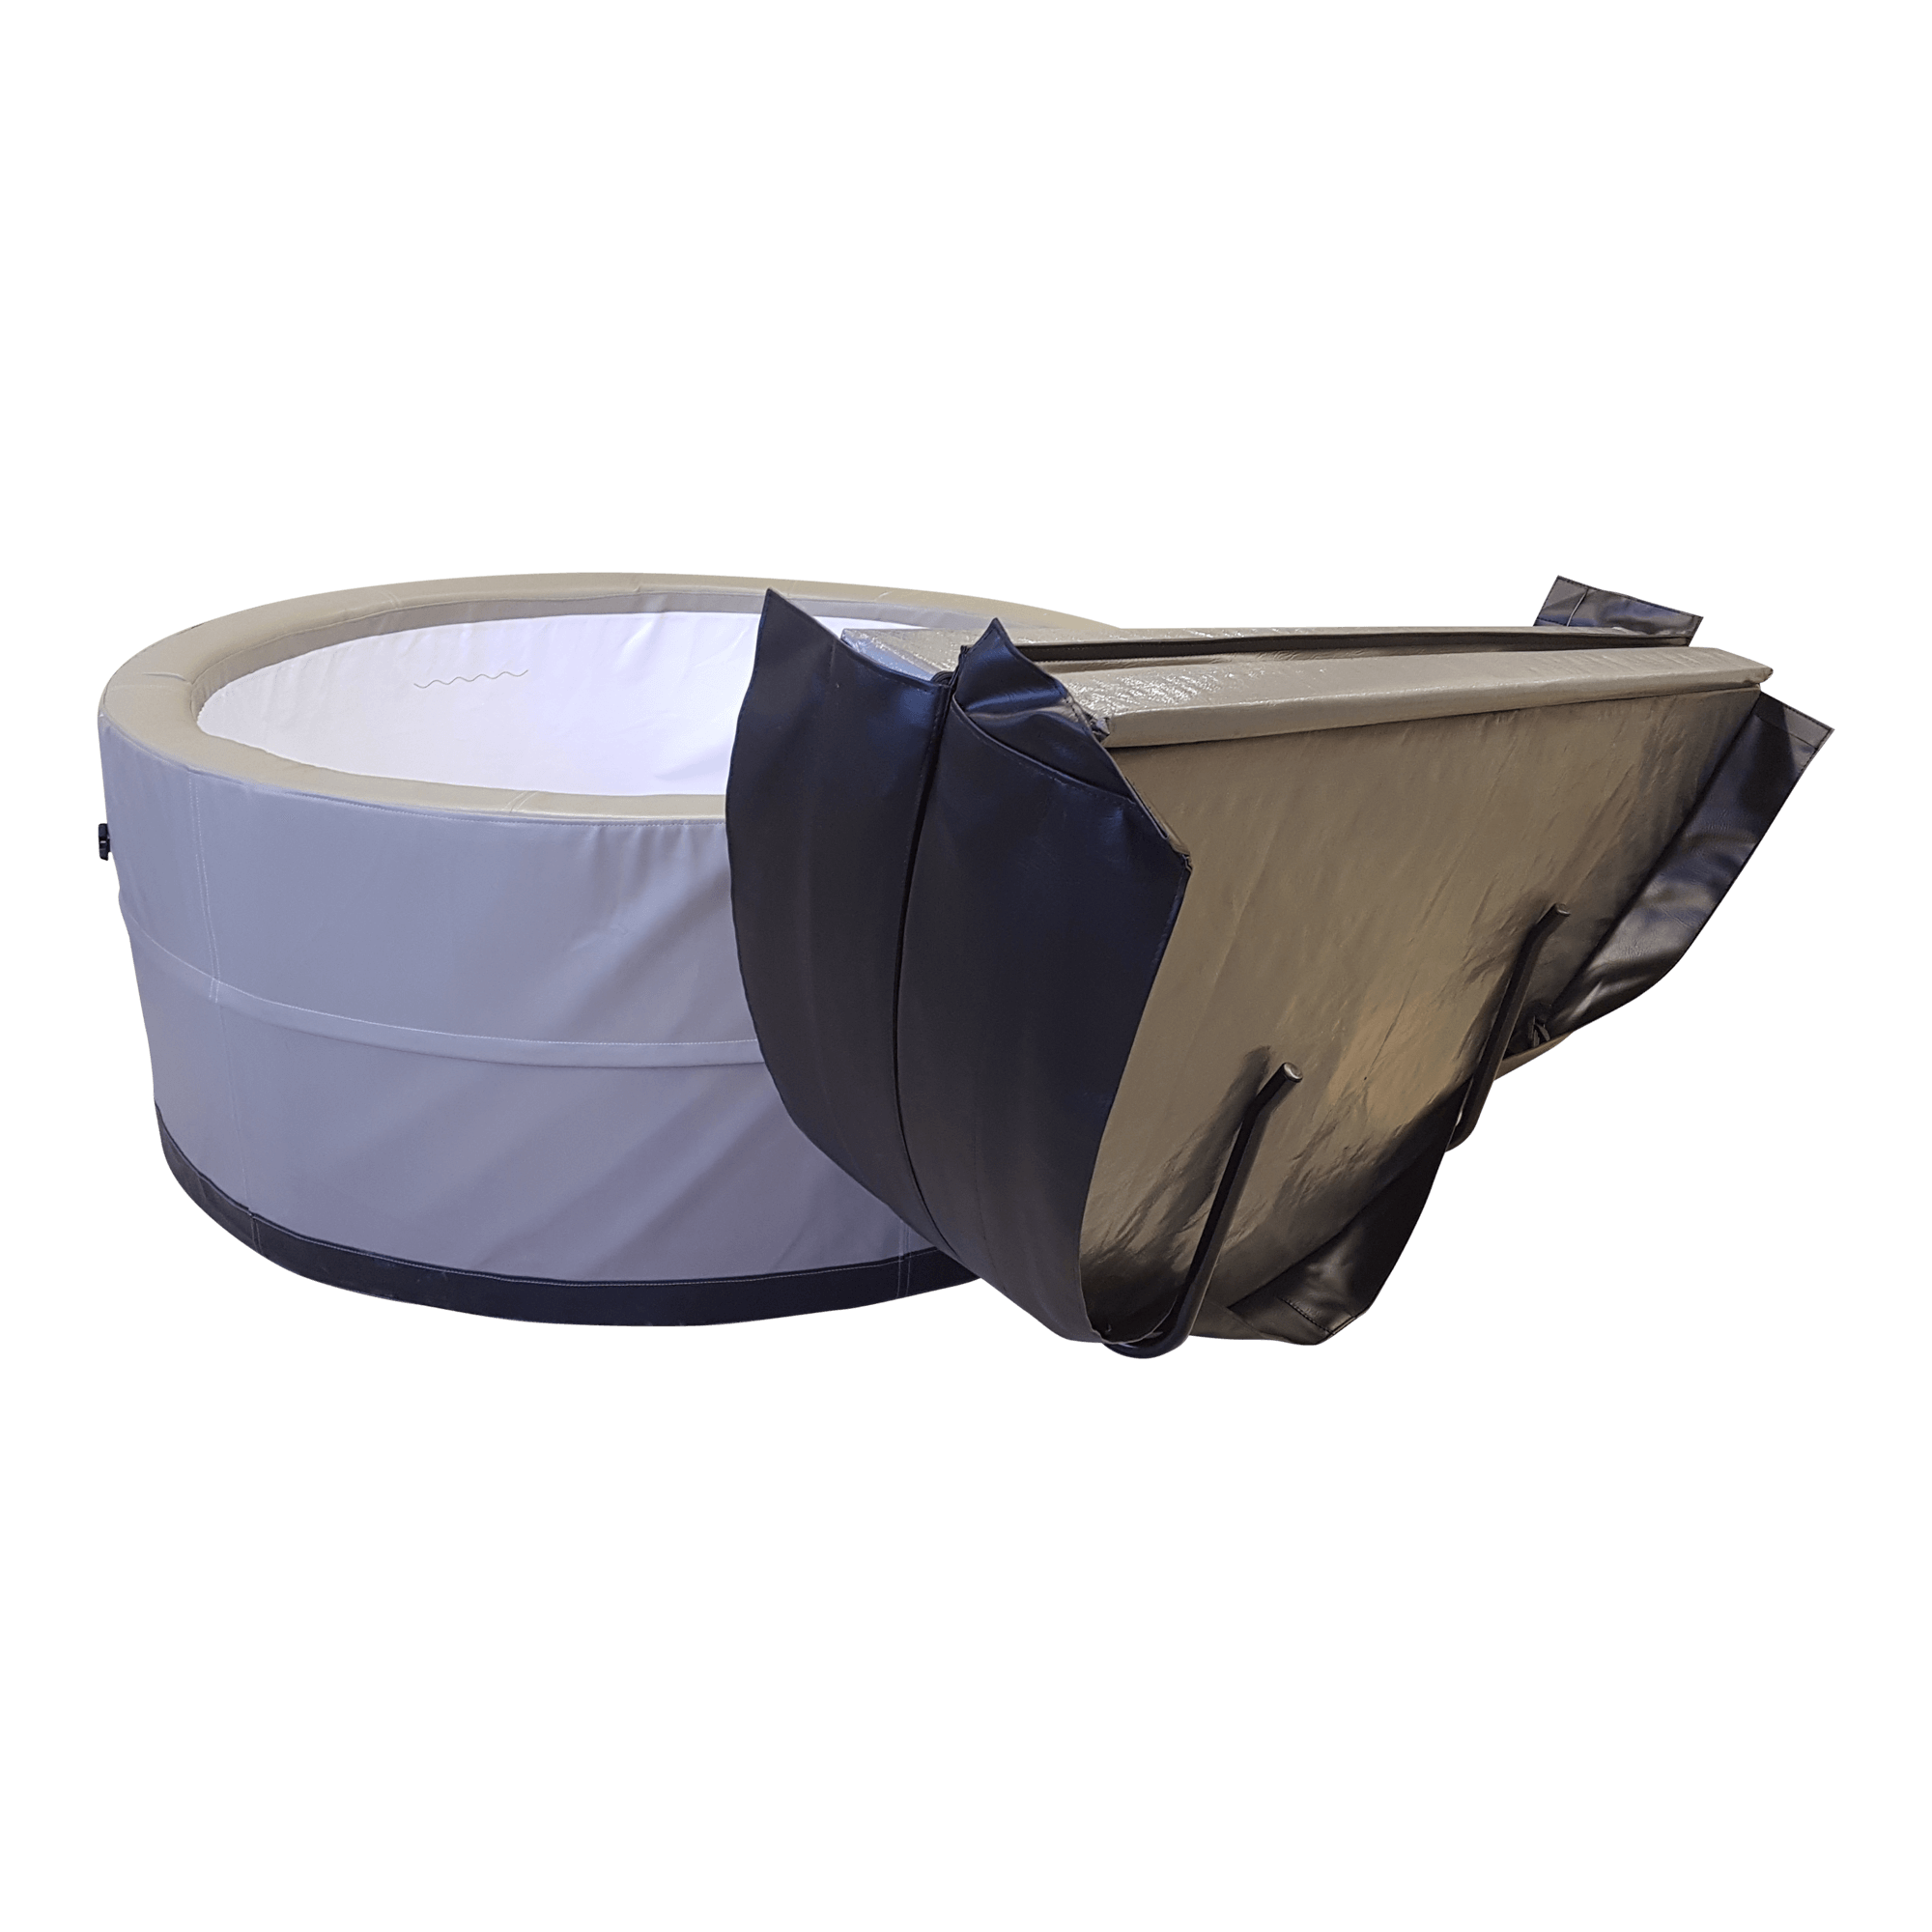 tub cover deck open img hot com cradle removable panels ilovemyoasis springs